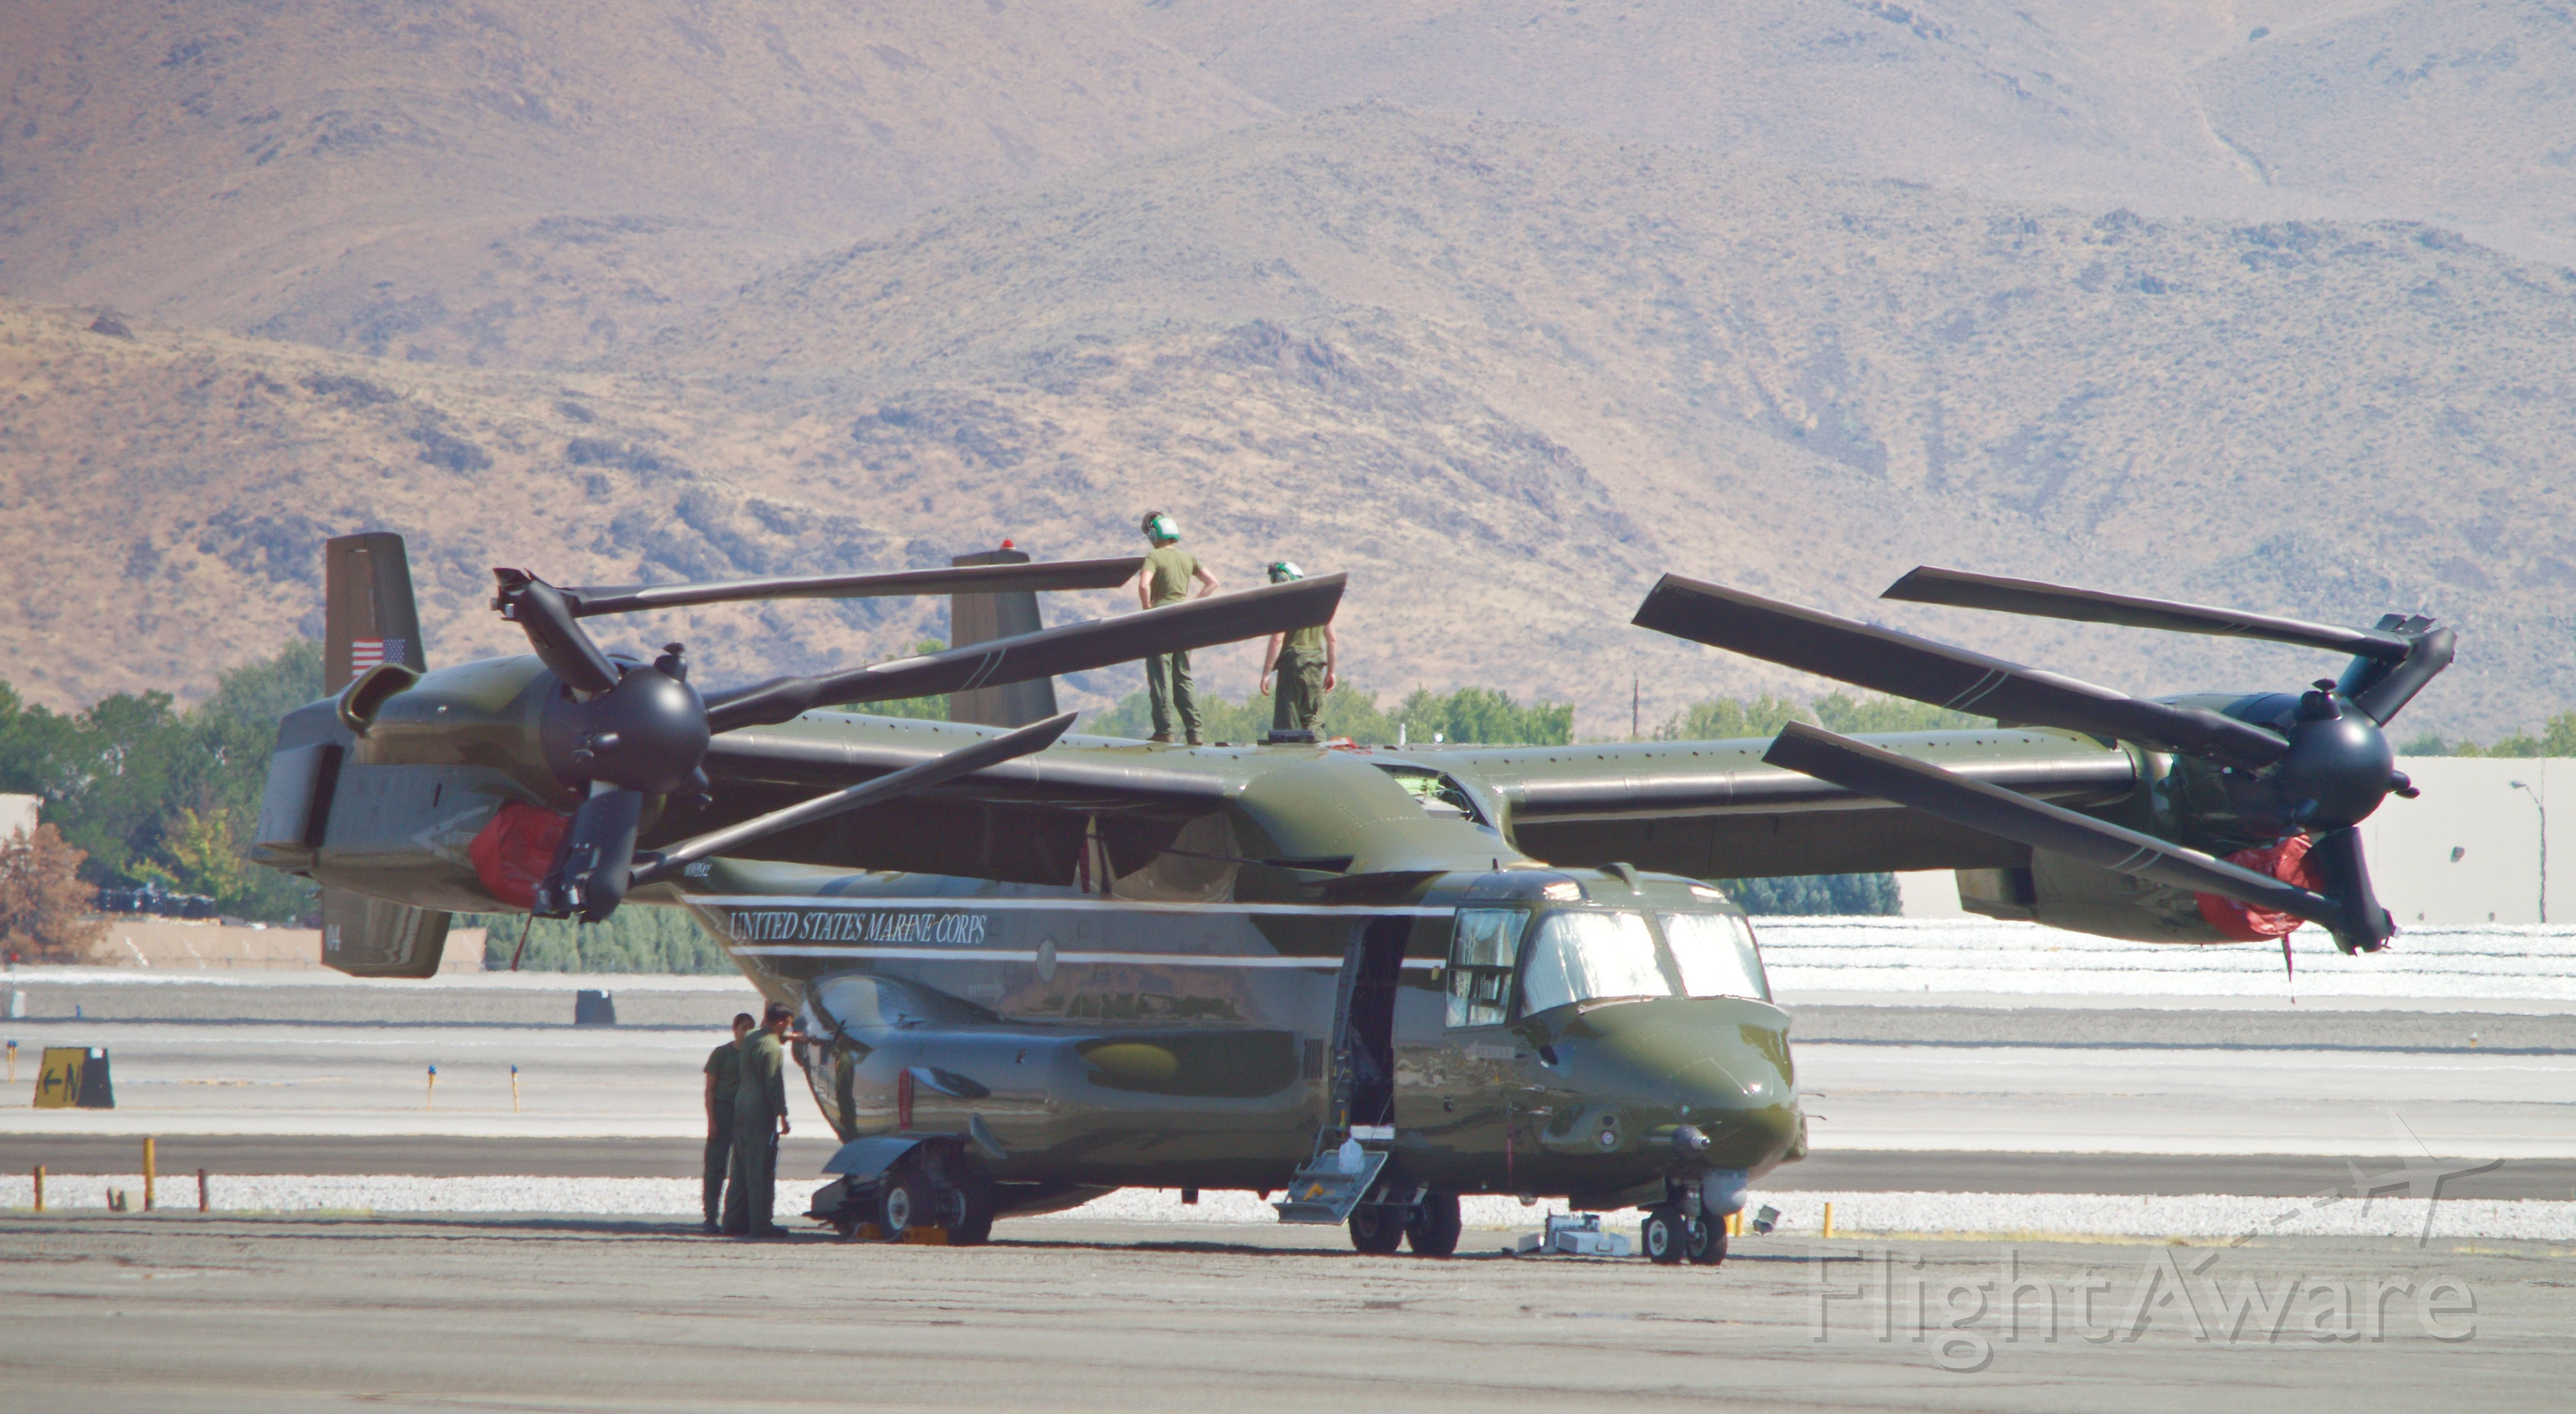 """16-8292 — - MV-22B at KRNO/Reno preparing for arrival of POTUS.  Three of the """"Ospreys"""" arrived to support the visit for a trip to the Lake Tahoe Conference  in August 2016"""